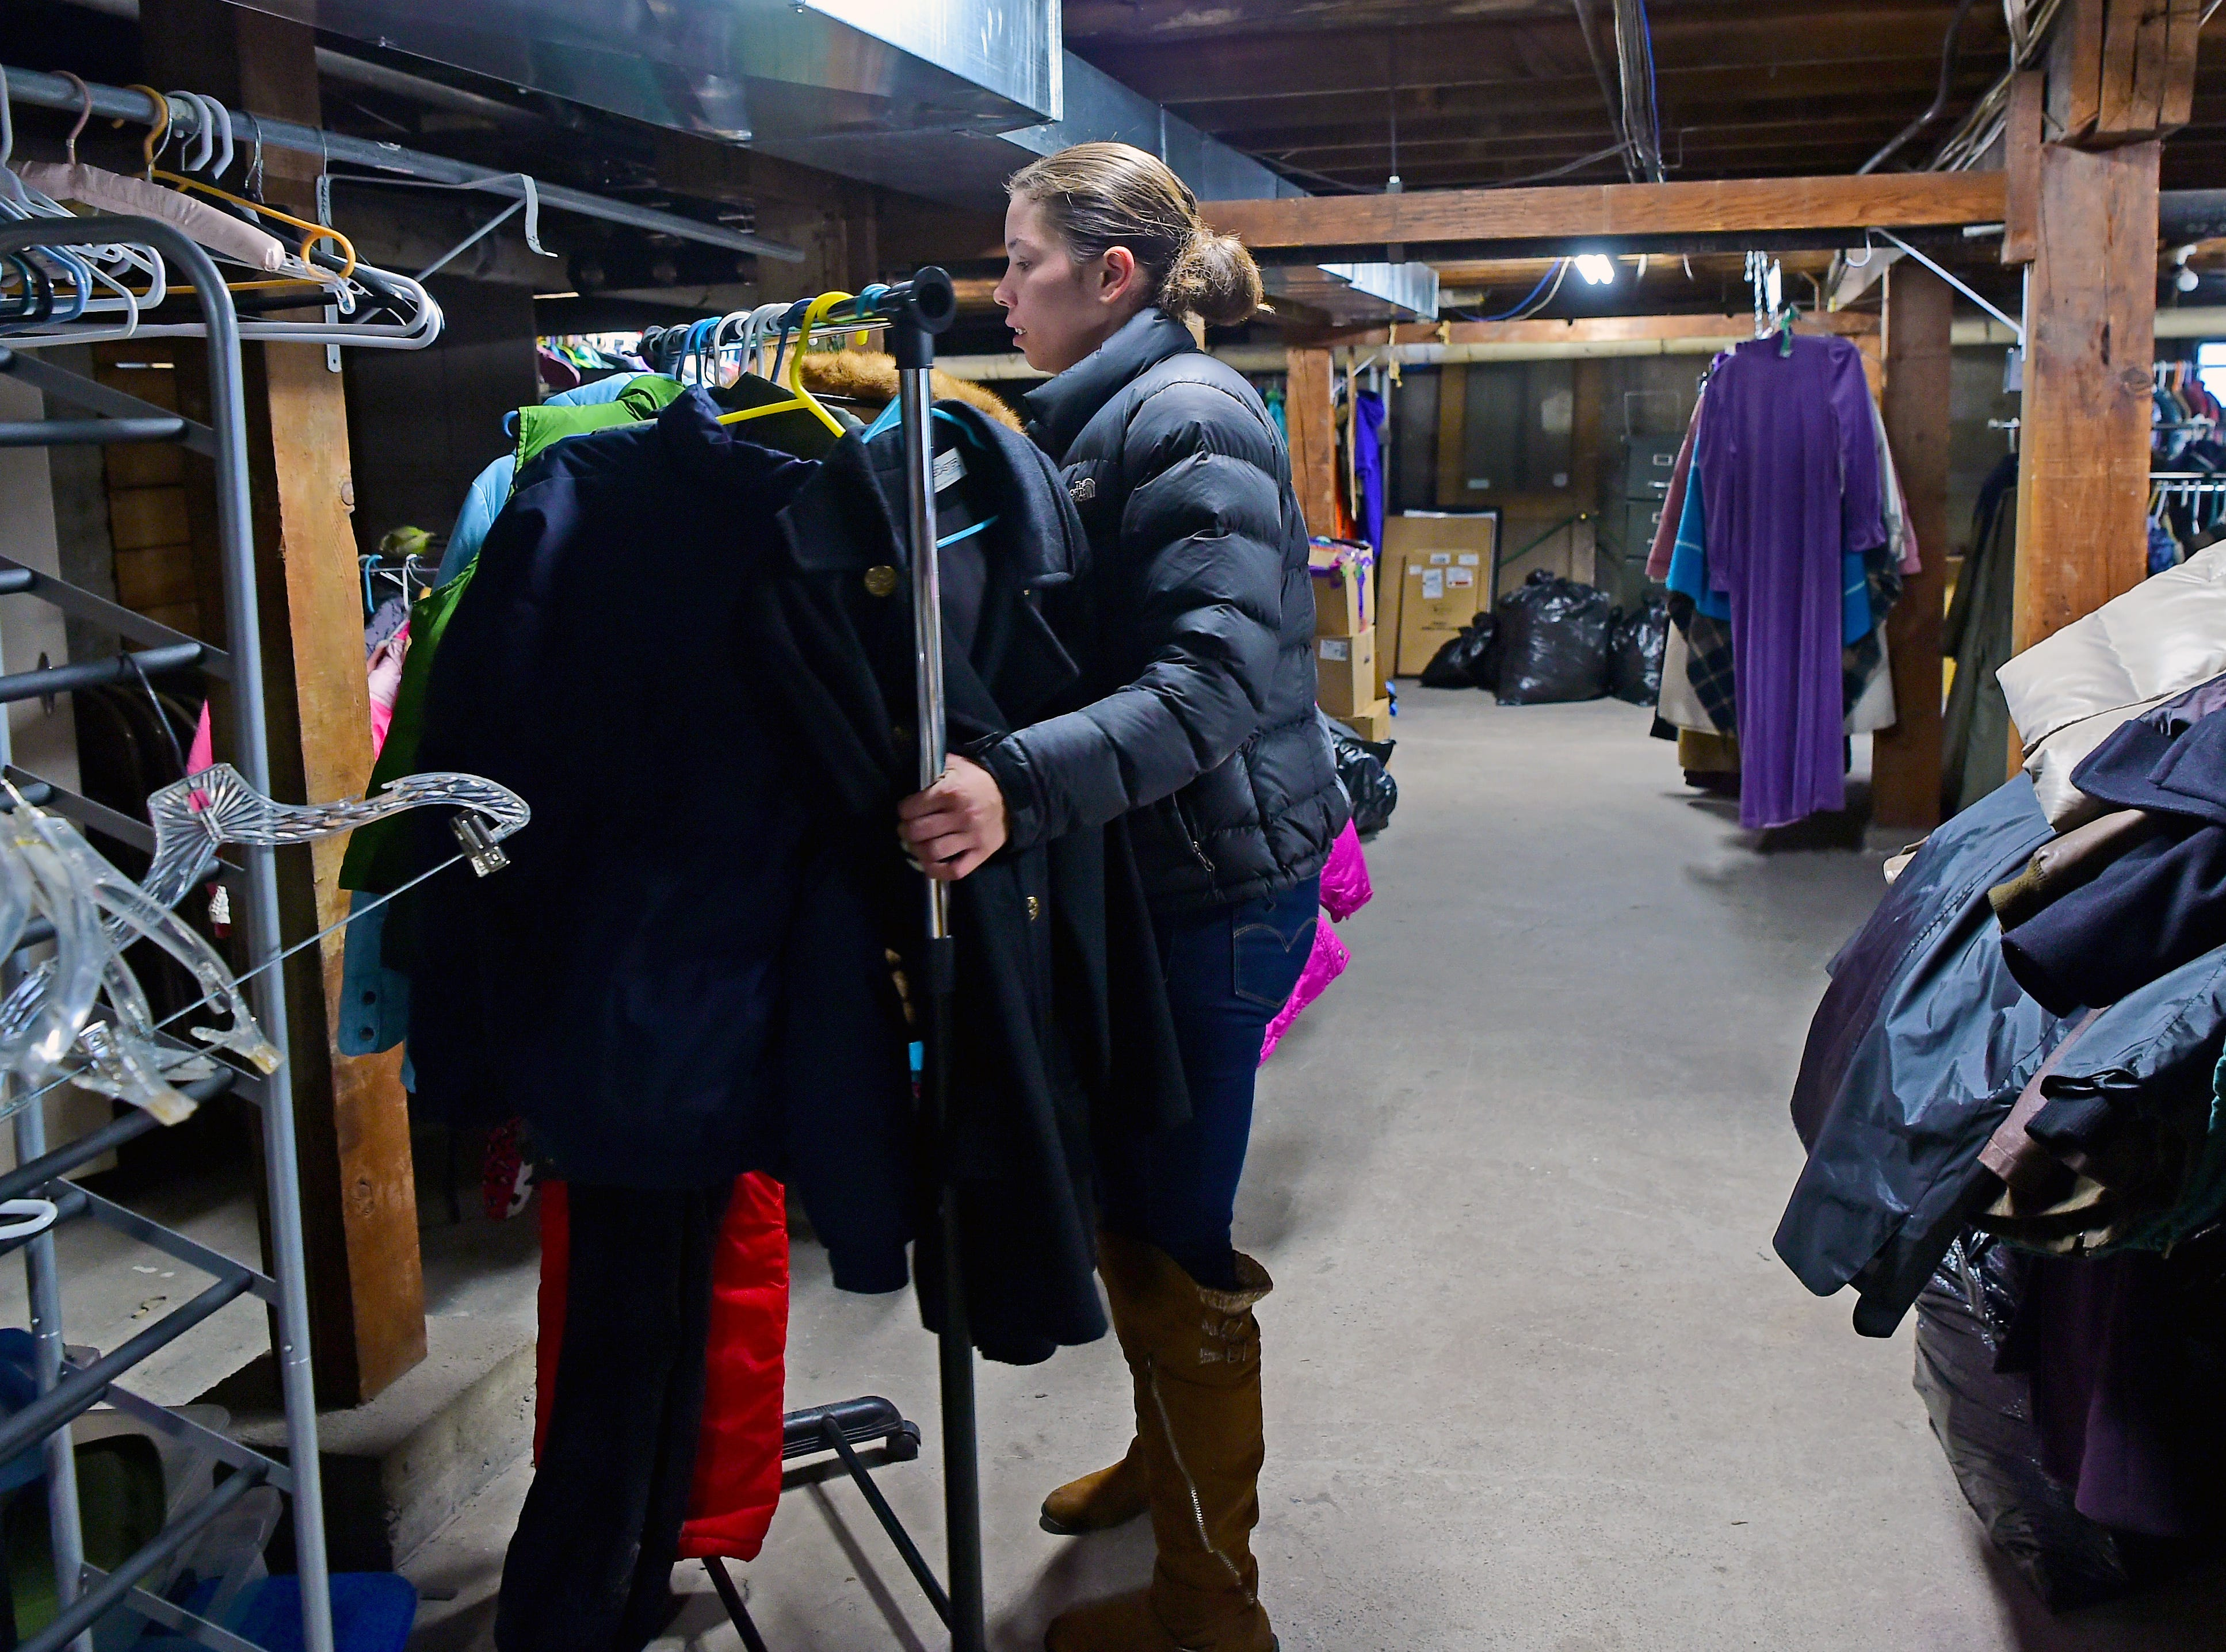 Shay Washington, a Catholic Charities caseworker, readies donated winter clothing donations in Ithaca on Thursday, November 29, 2018.